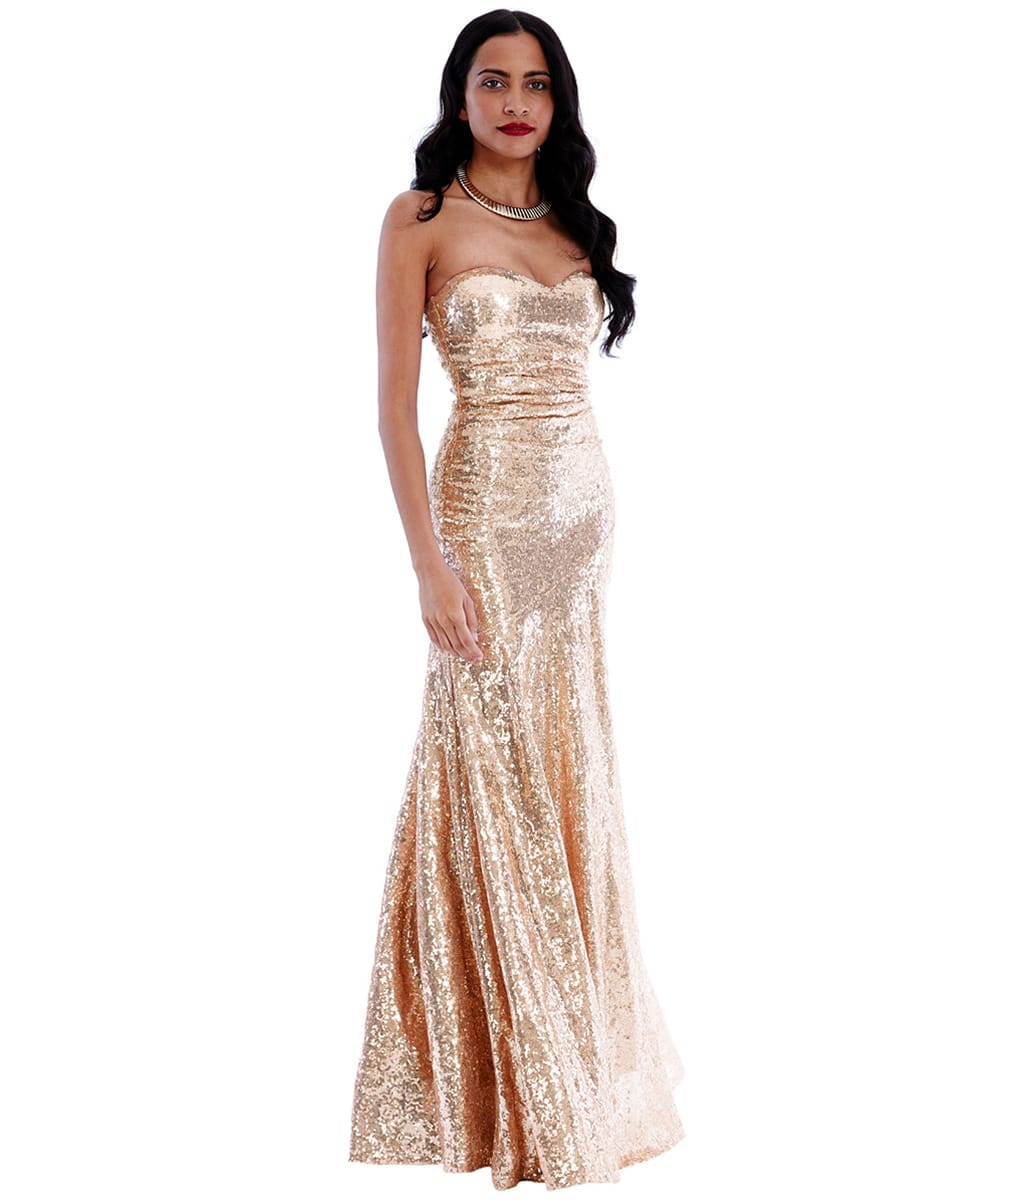 City Goddess - Champagne Sweetheart Strapless Sequins Gown | Alila ...